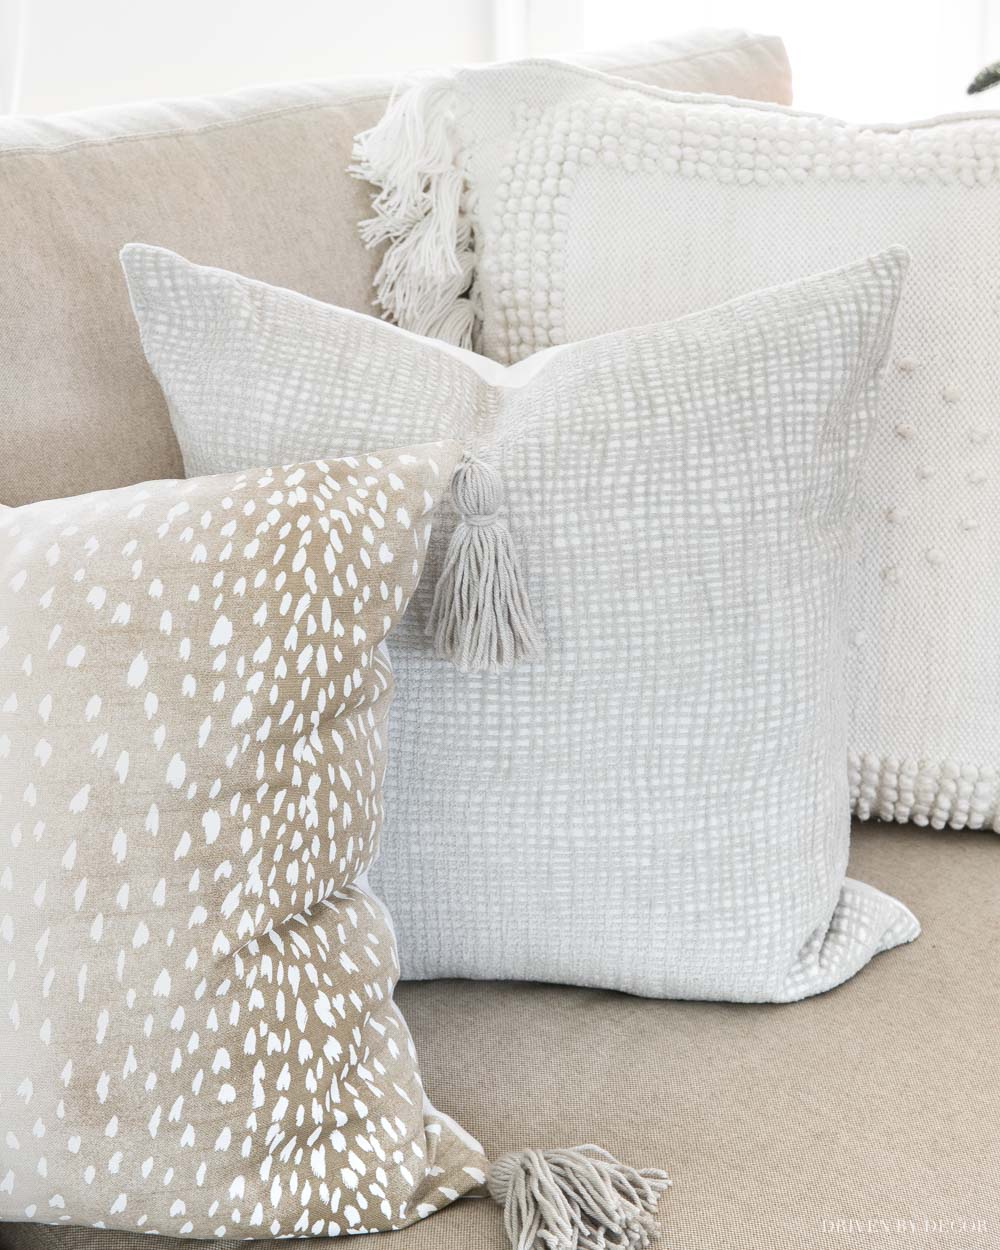 Love these pillows from Etsy!